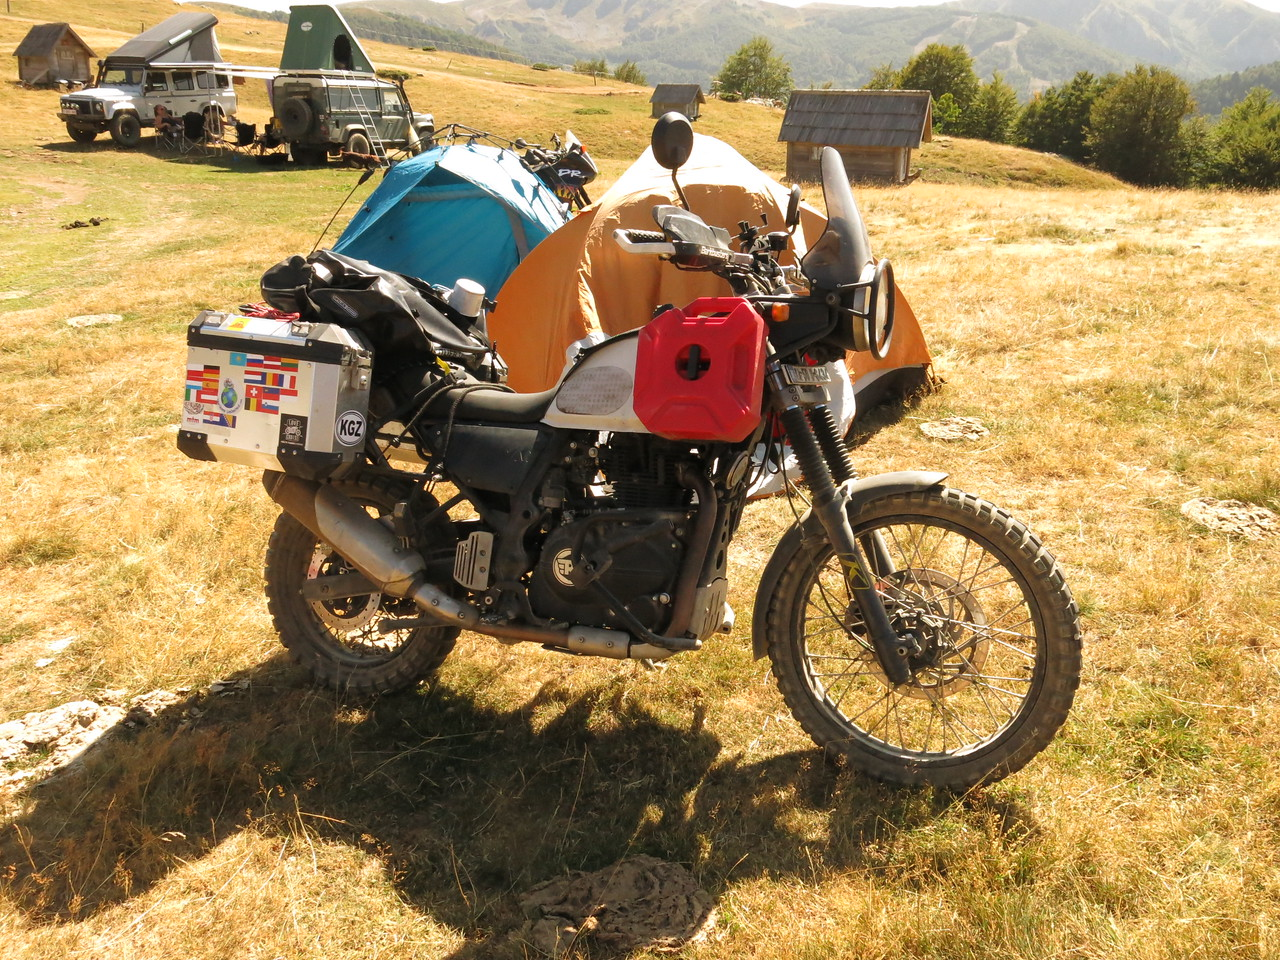 This Royal Enfield Hamalayan came to Europe the proper way: overland with its Indian rider